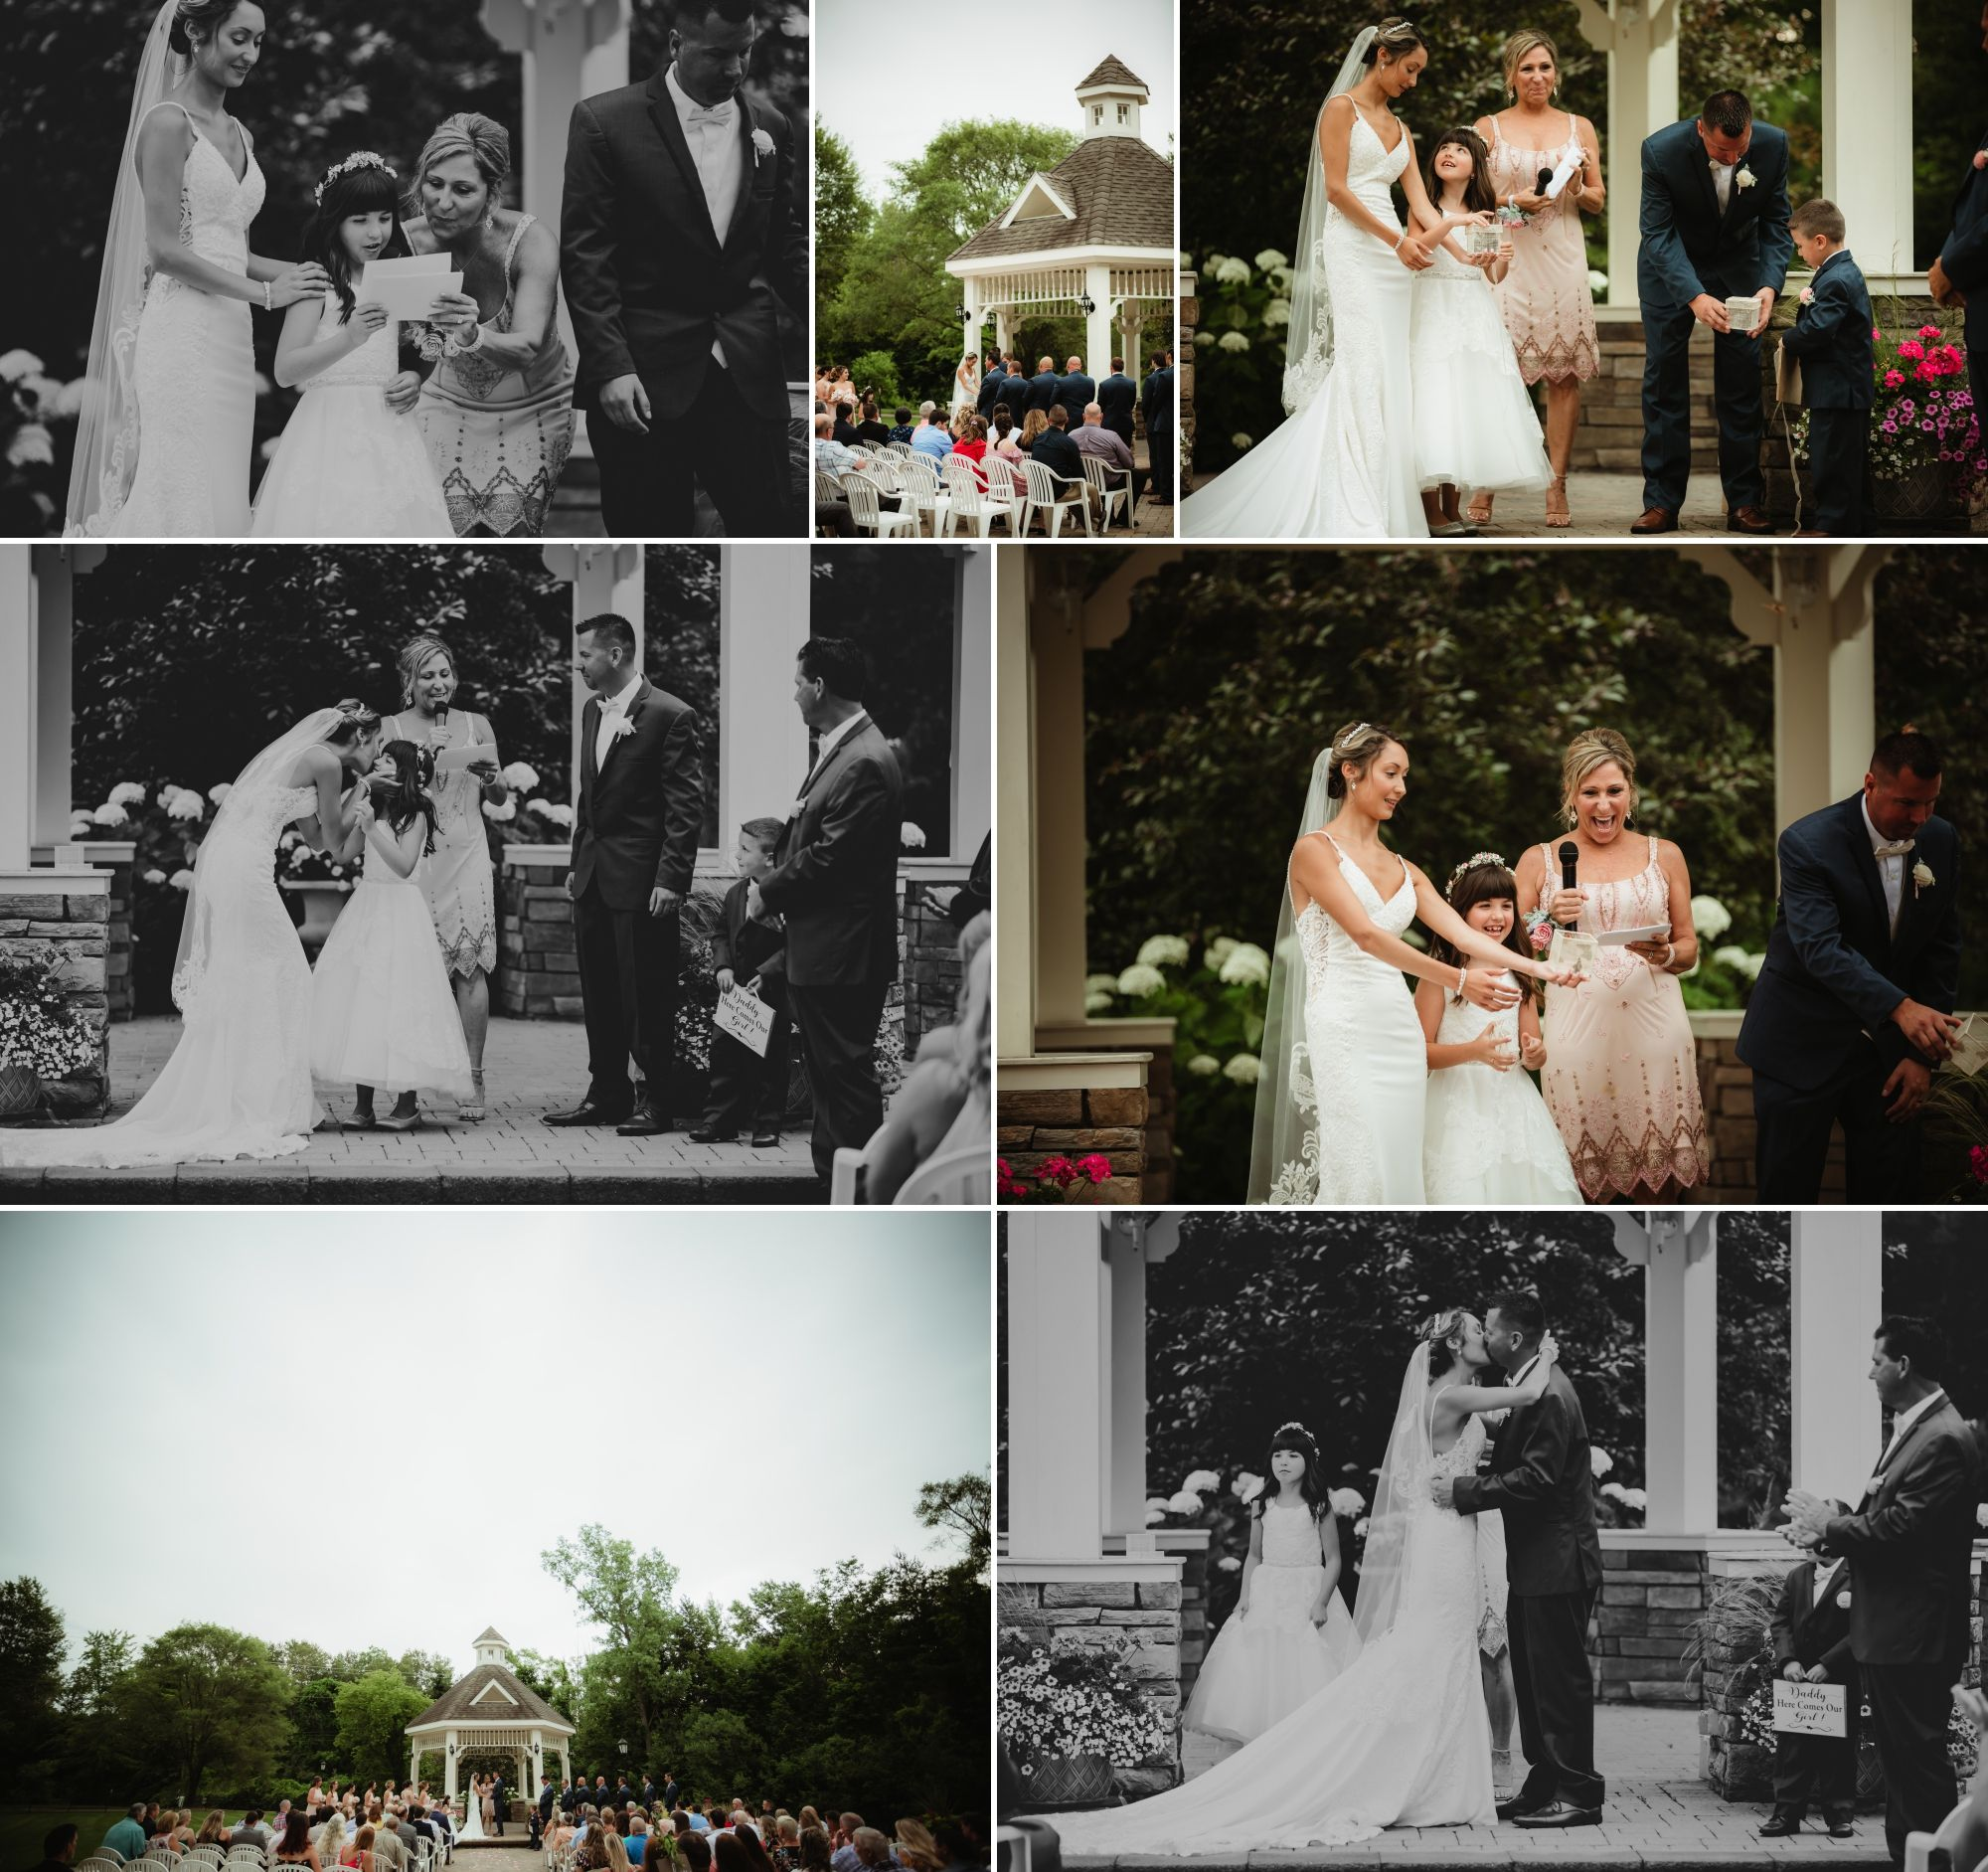 Photo collage of an outdoor wedding ceremony on a patio by a river.